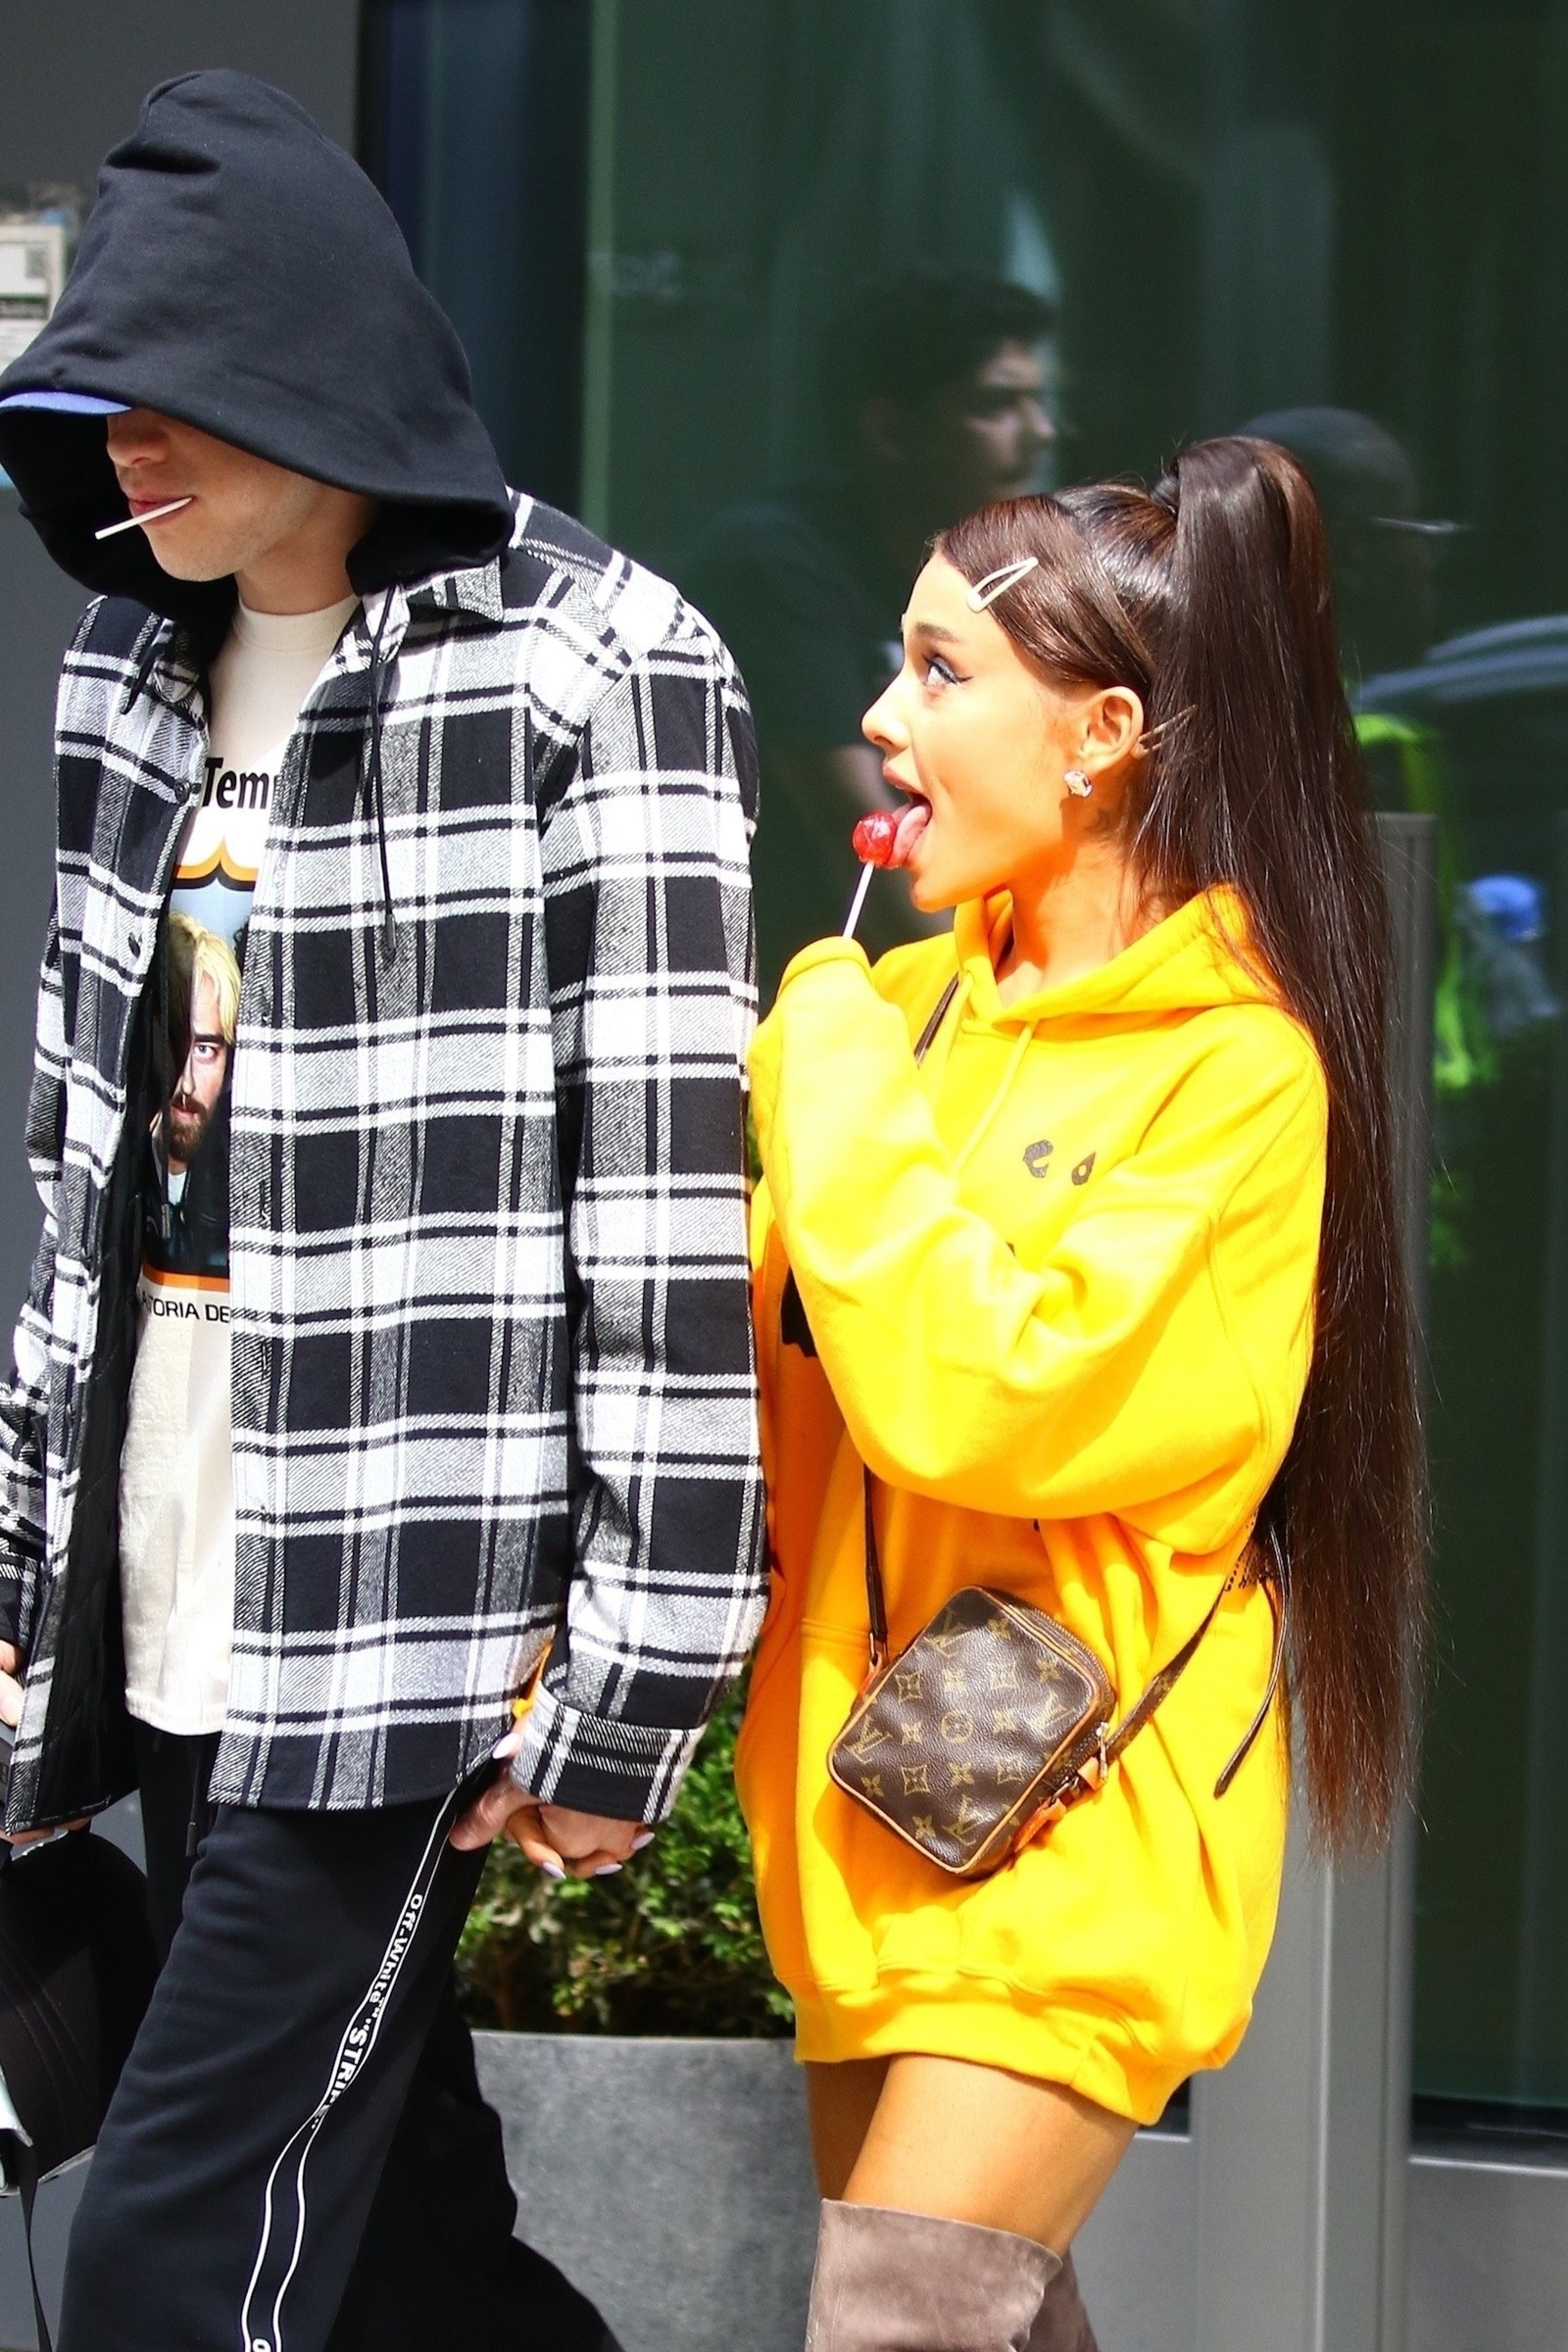 Buzzffed Best Of Ariana Grande: These Pics Of Ariana Grande, A Lollipop, And Pete Davidson